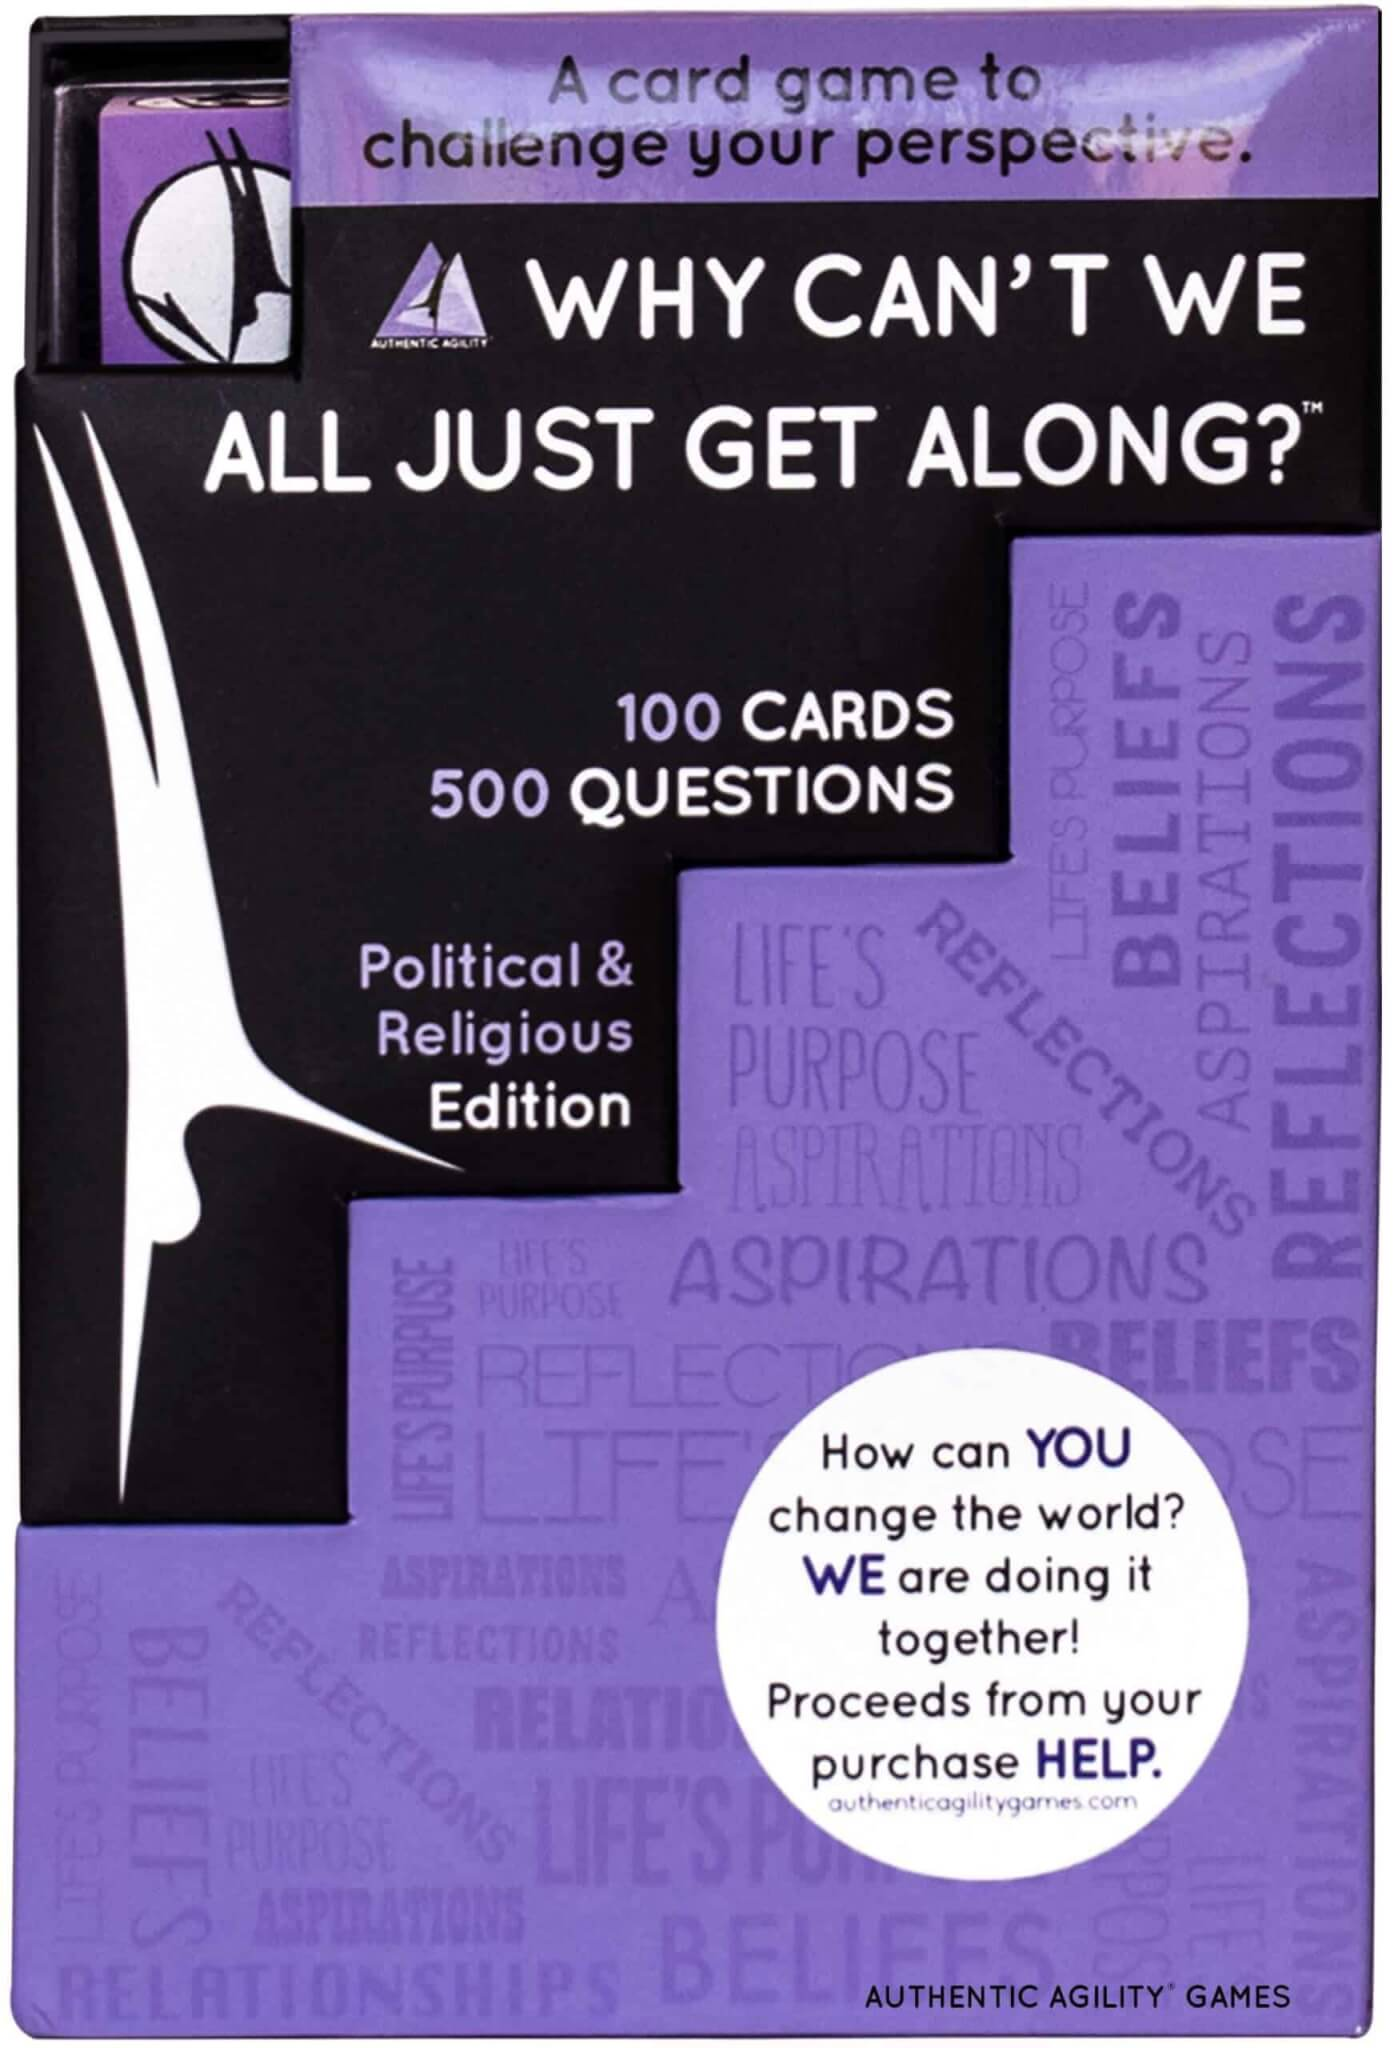 Authentic Agility Game's political and religious tabletop discussion game why can't we all just get along